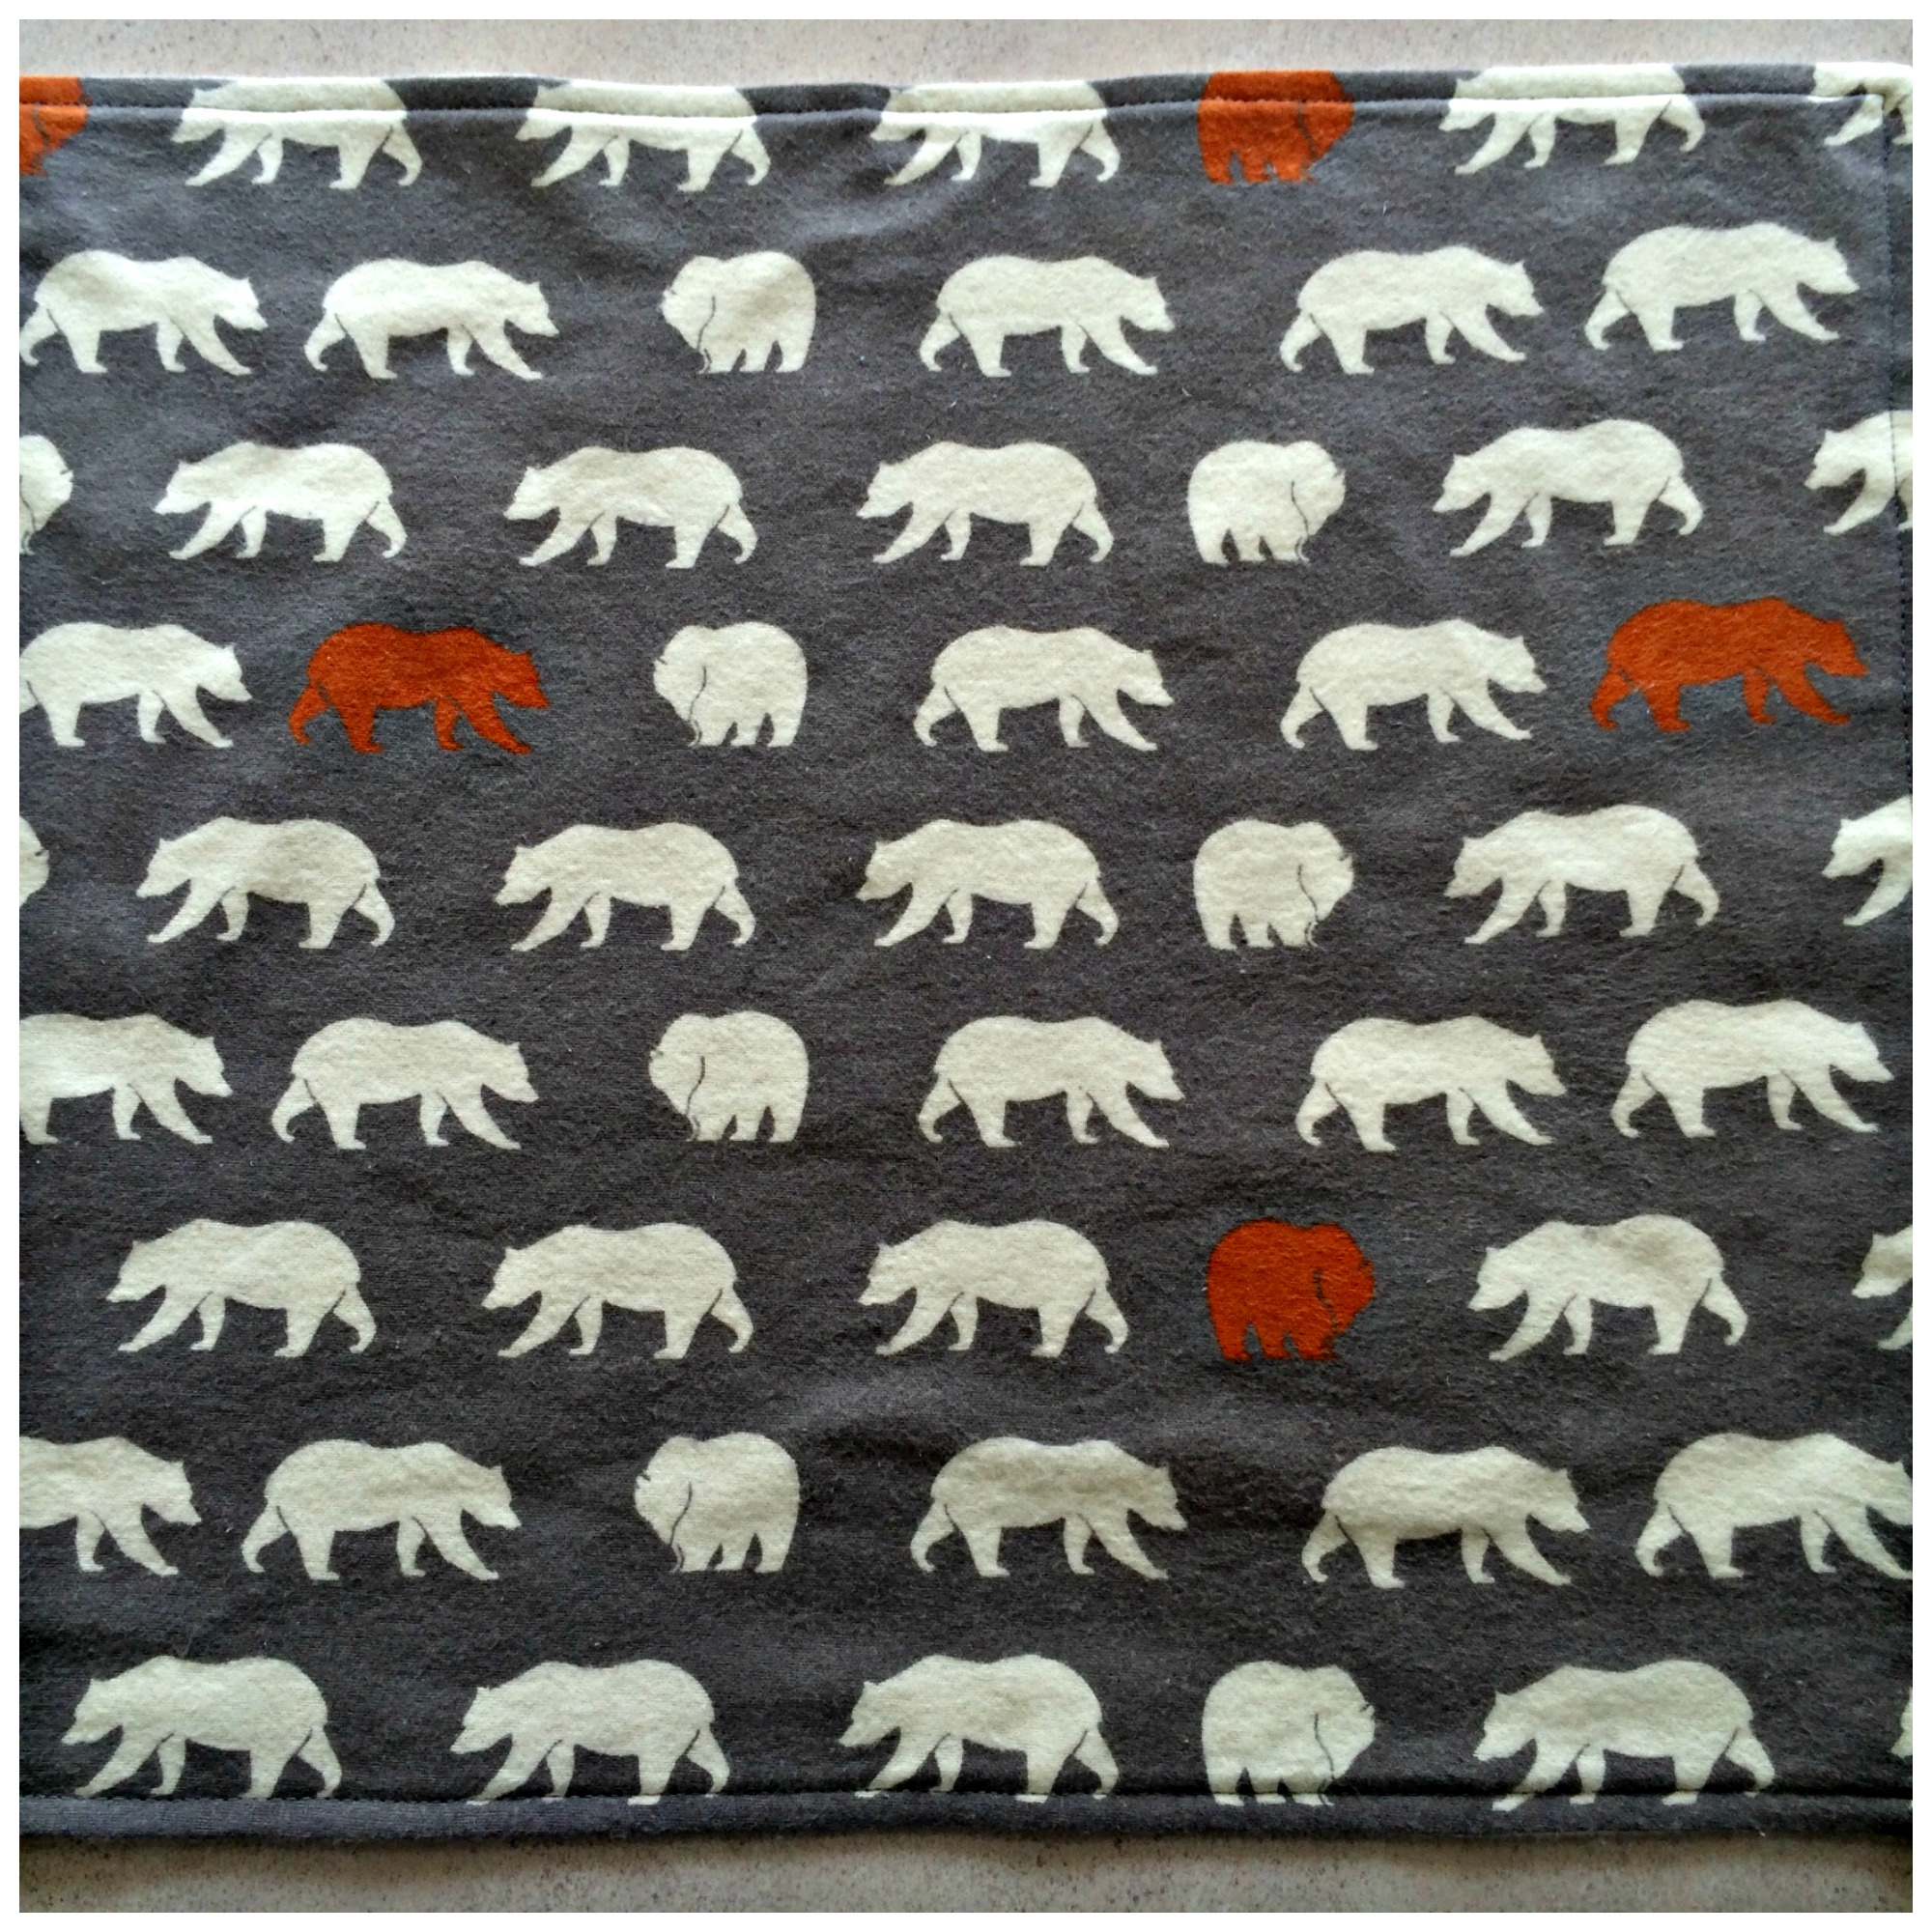 Baby Blanket With Adorable Polar Bear Appliques Grey and White Flannel with Polar Bear Print. #babyblanket #appliques #sewing #polarbear #flannel #grey